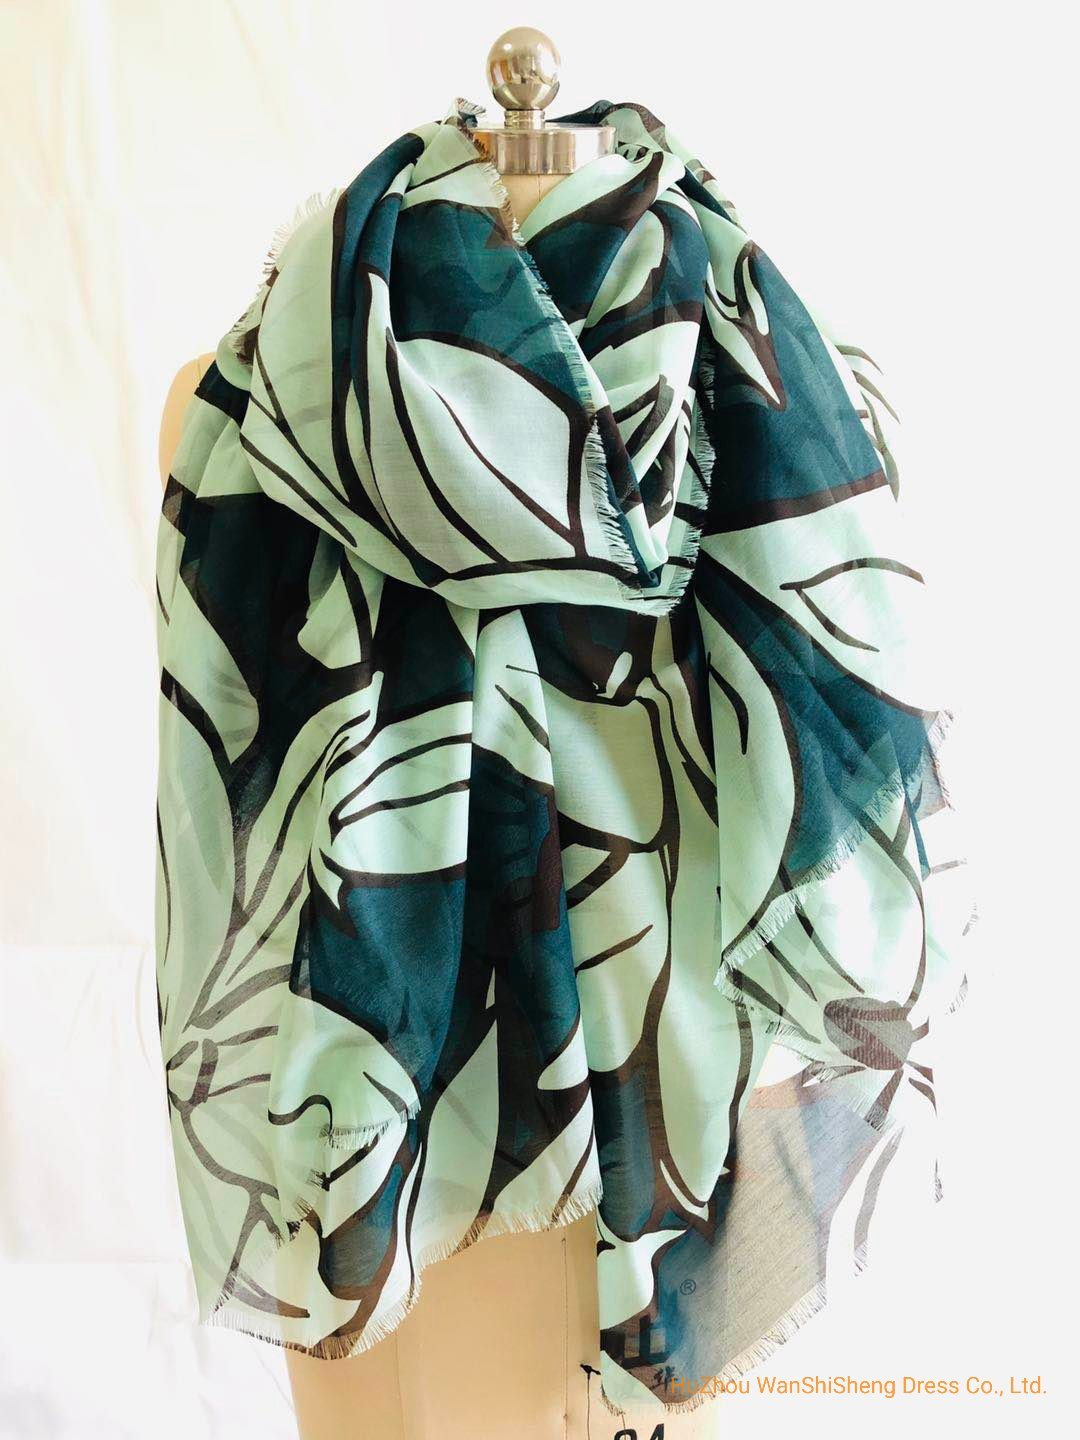 Factory Price Oem Hot Fashion Muffler Tropical Leaf Print Scarves Shawl Elegant Women Lady High Quality Long Soft Print Scarf China Polyester Scarf And Shawl Price Made In China Com